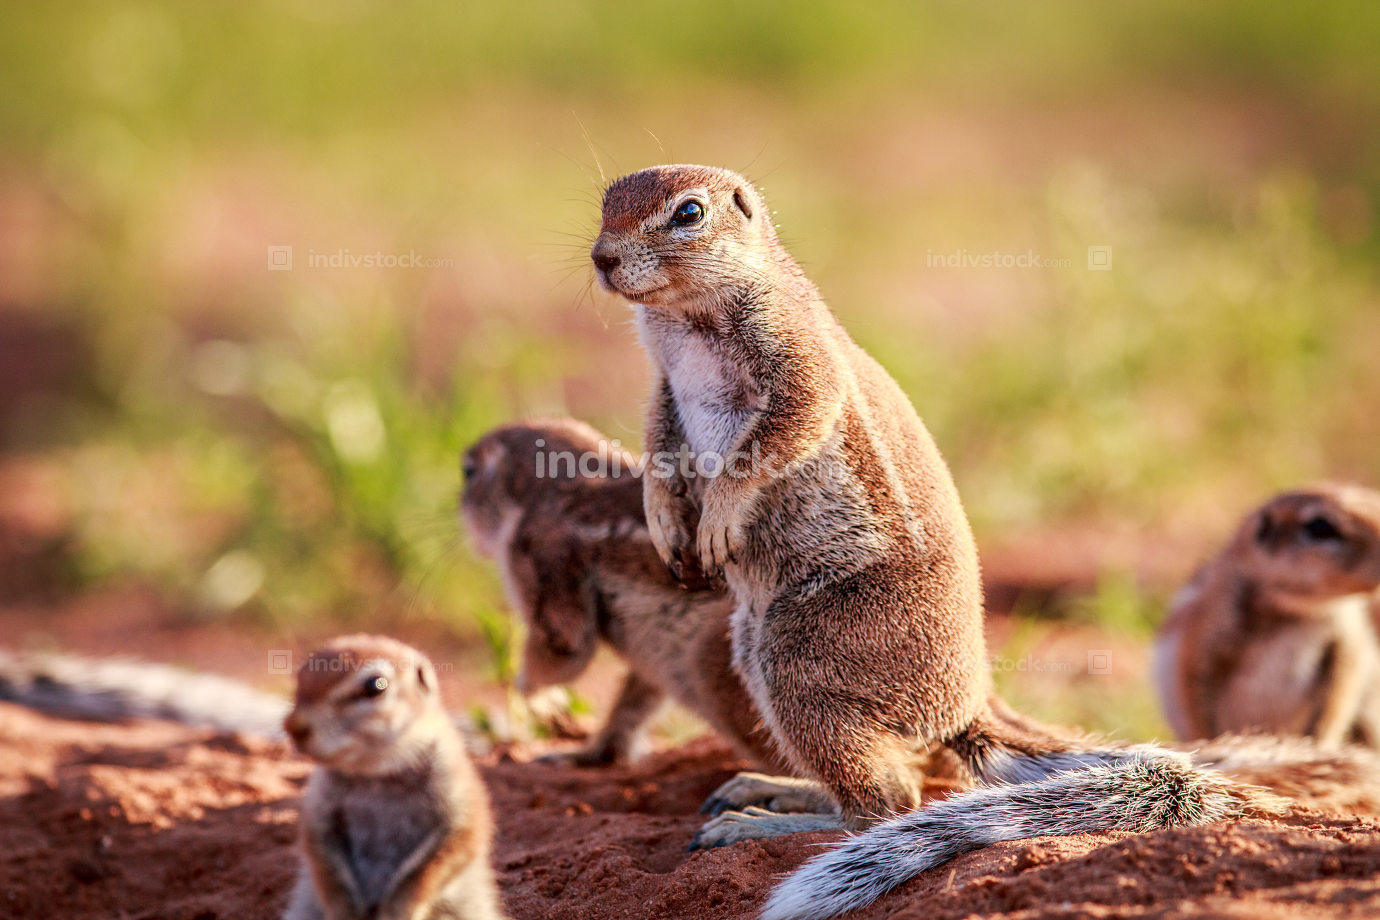 Ground squirrels in the sand.